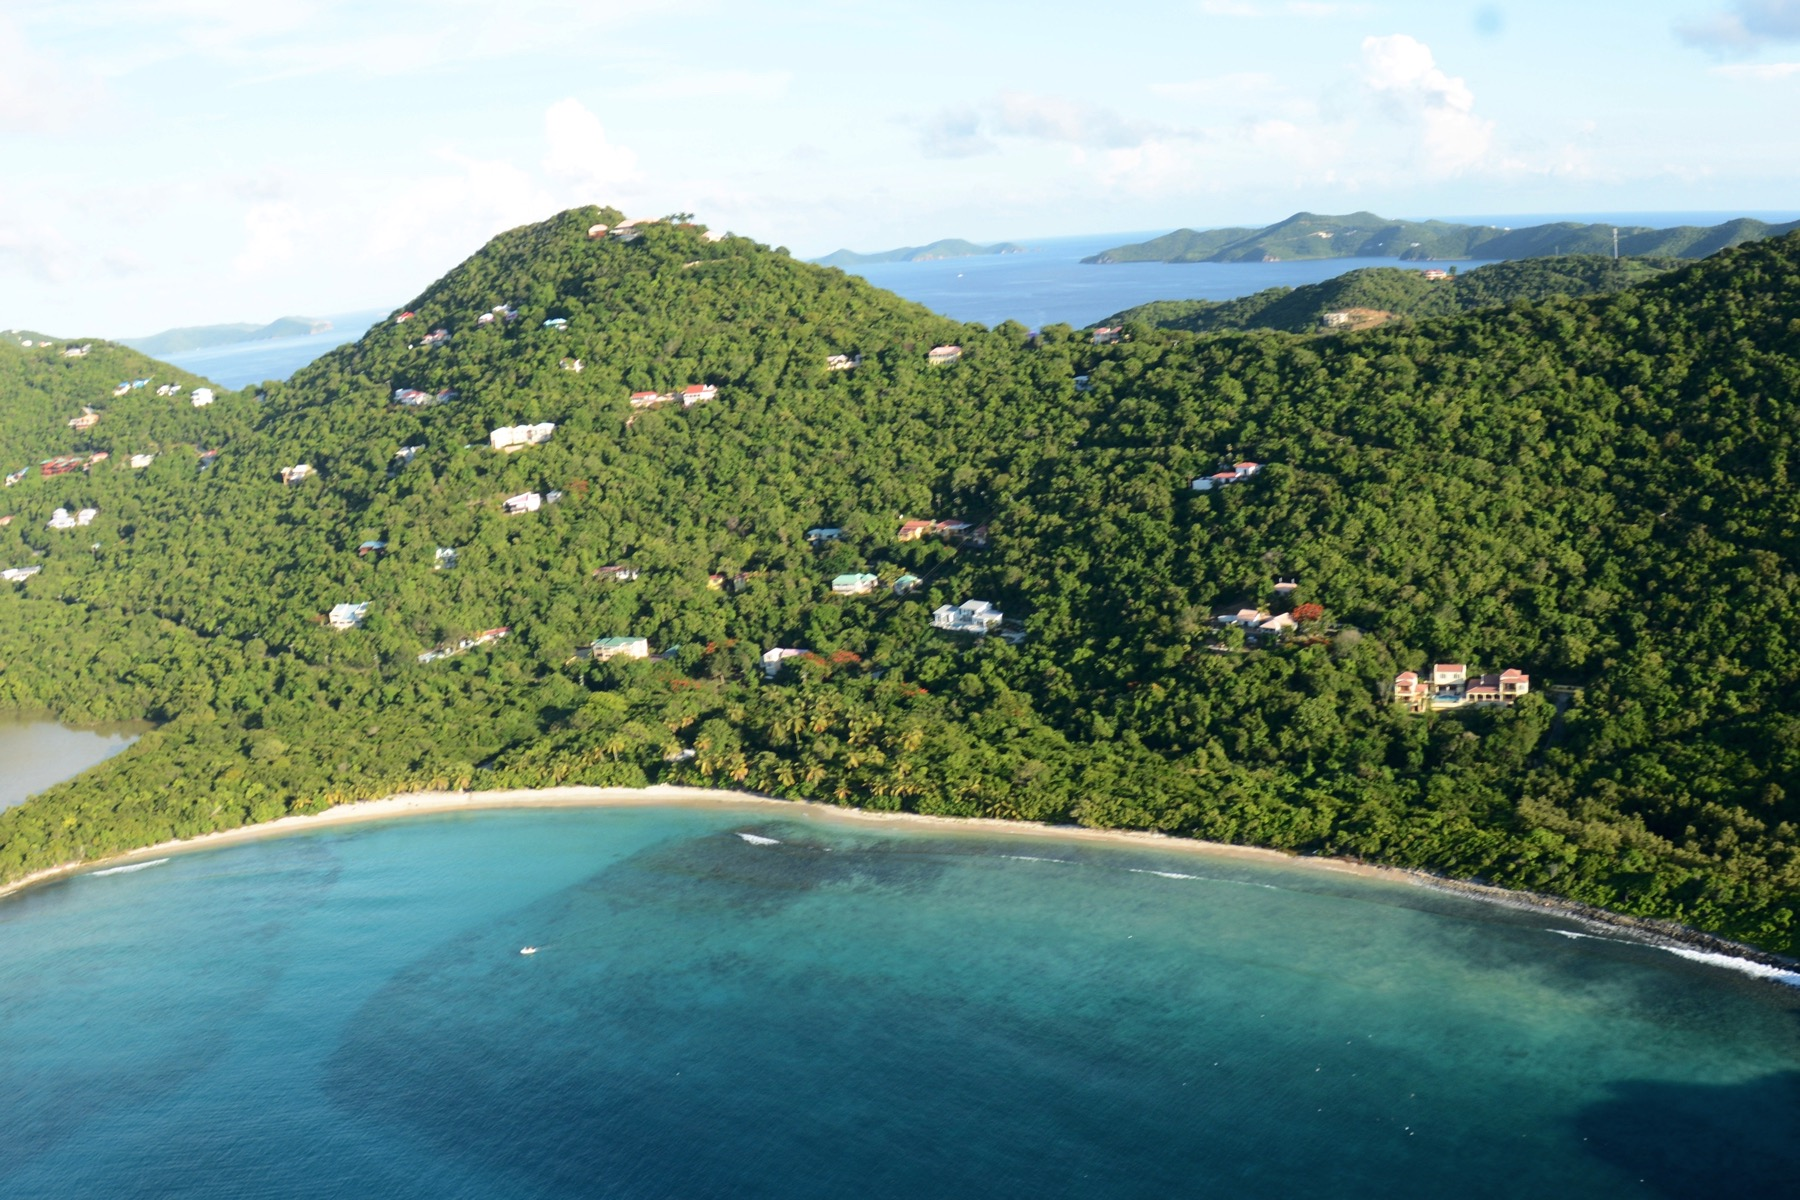 Land for Sale at Belmont Land 55 Belmont, Tortola British Virgin Islands